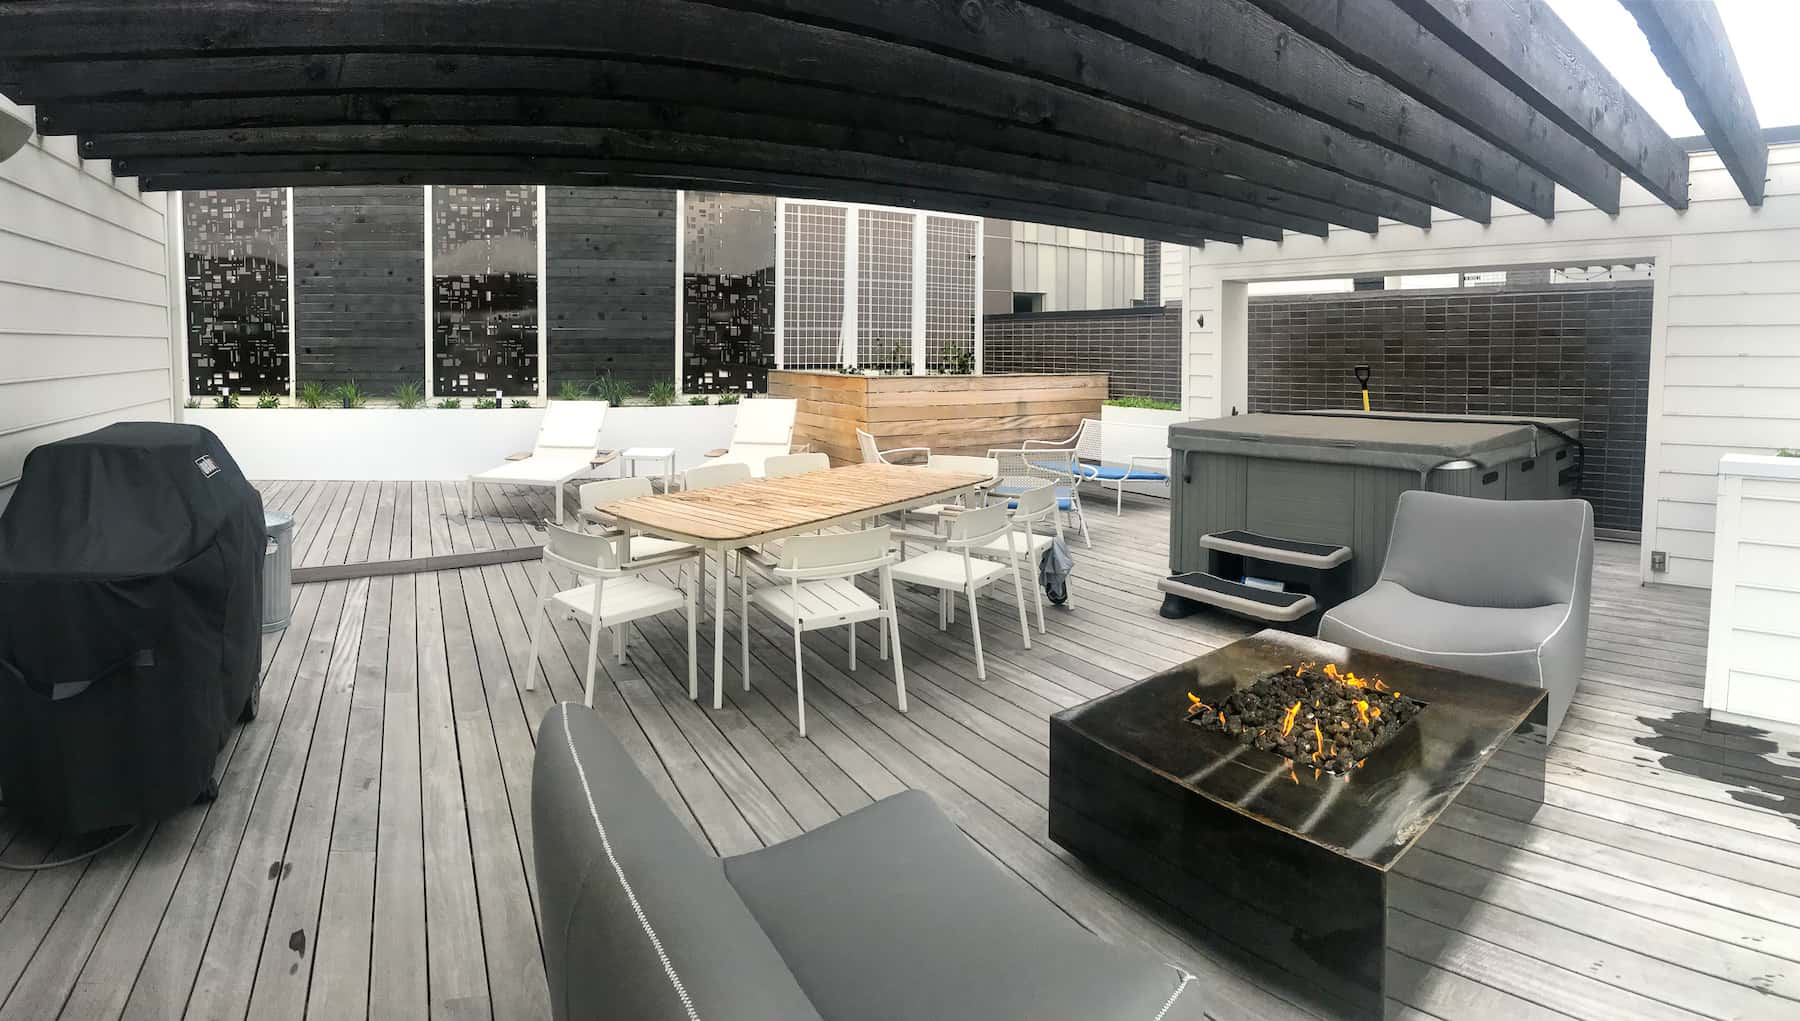 Pergola Dining Fire Pit Deck Hot Tub LoHi Denver, CO